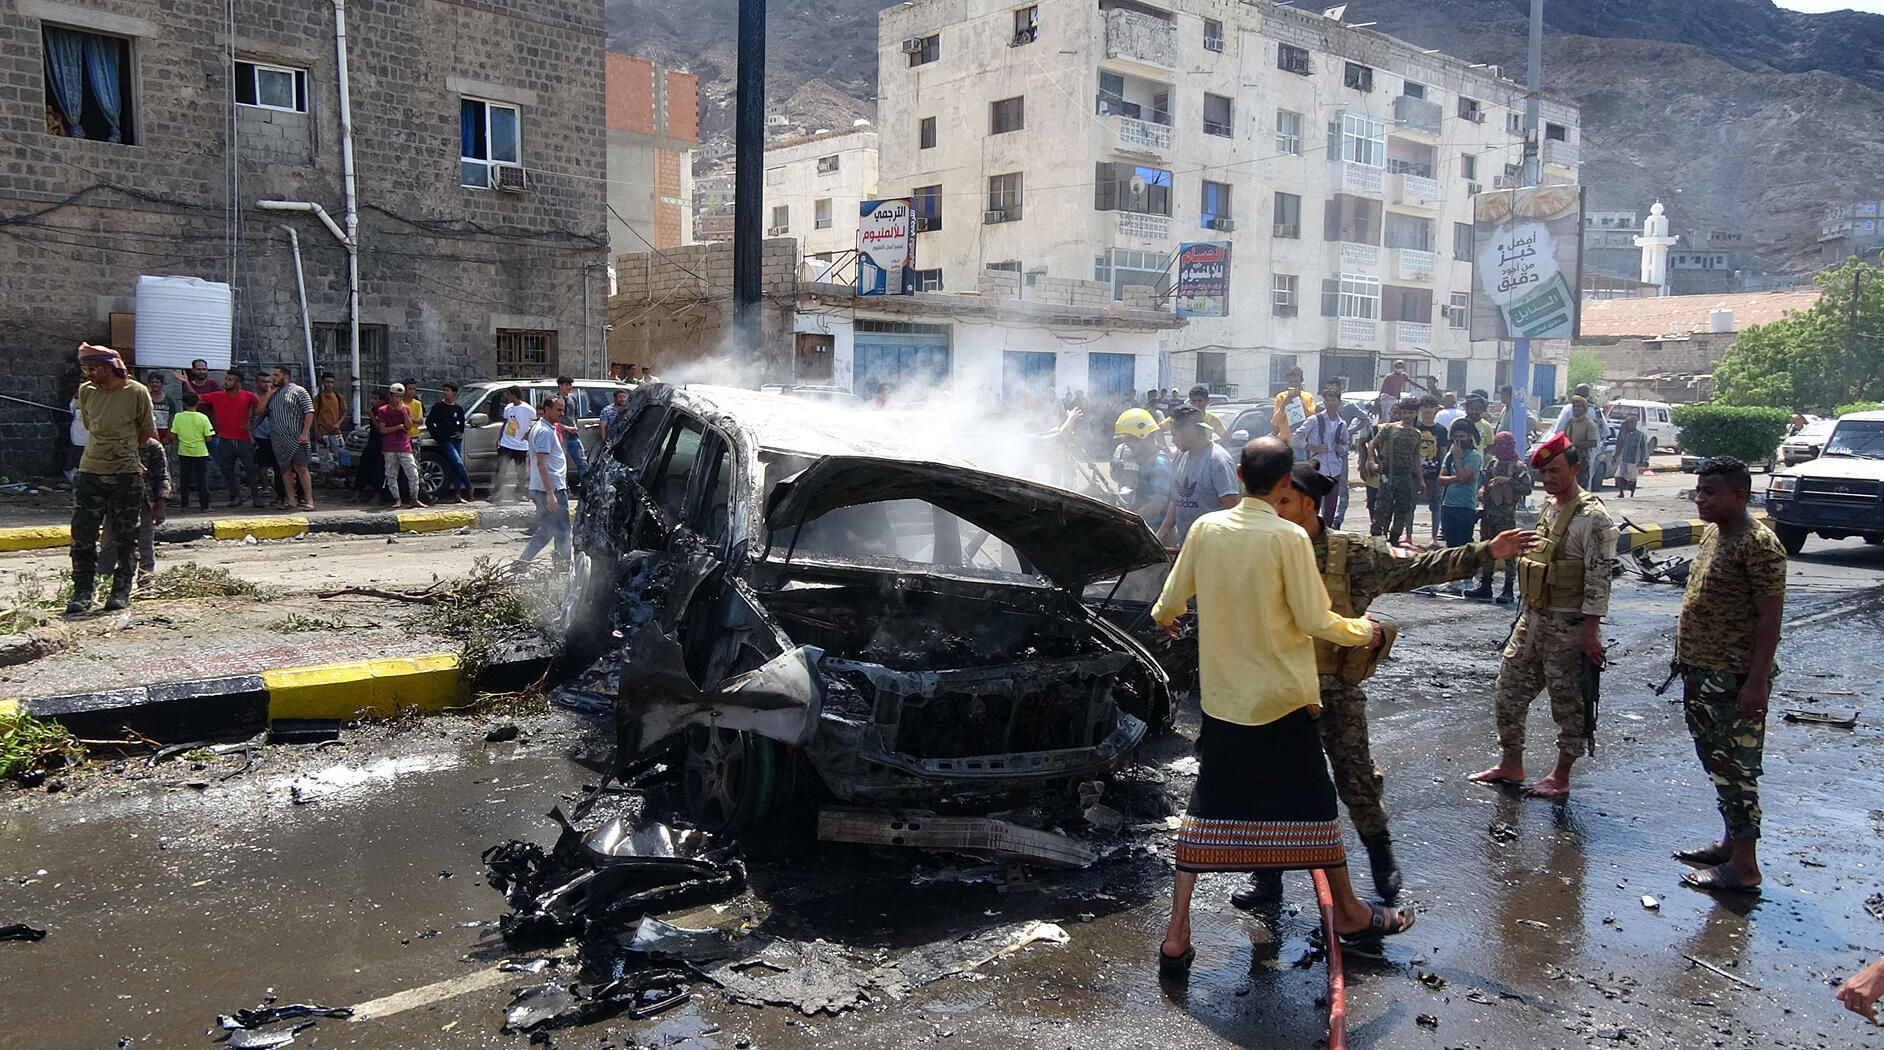 Yemeni security forces and onlookers gather at the scene of a car-bomb explosion in the heart of Yemen's southern port city of Aden on Sunday